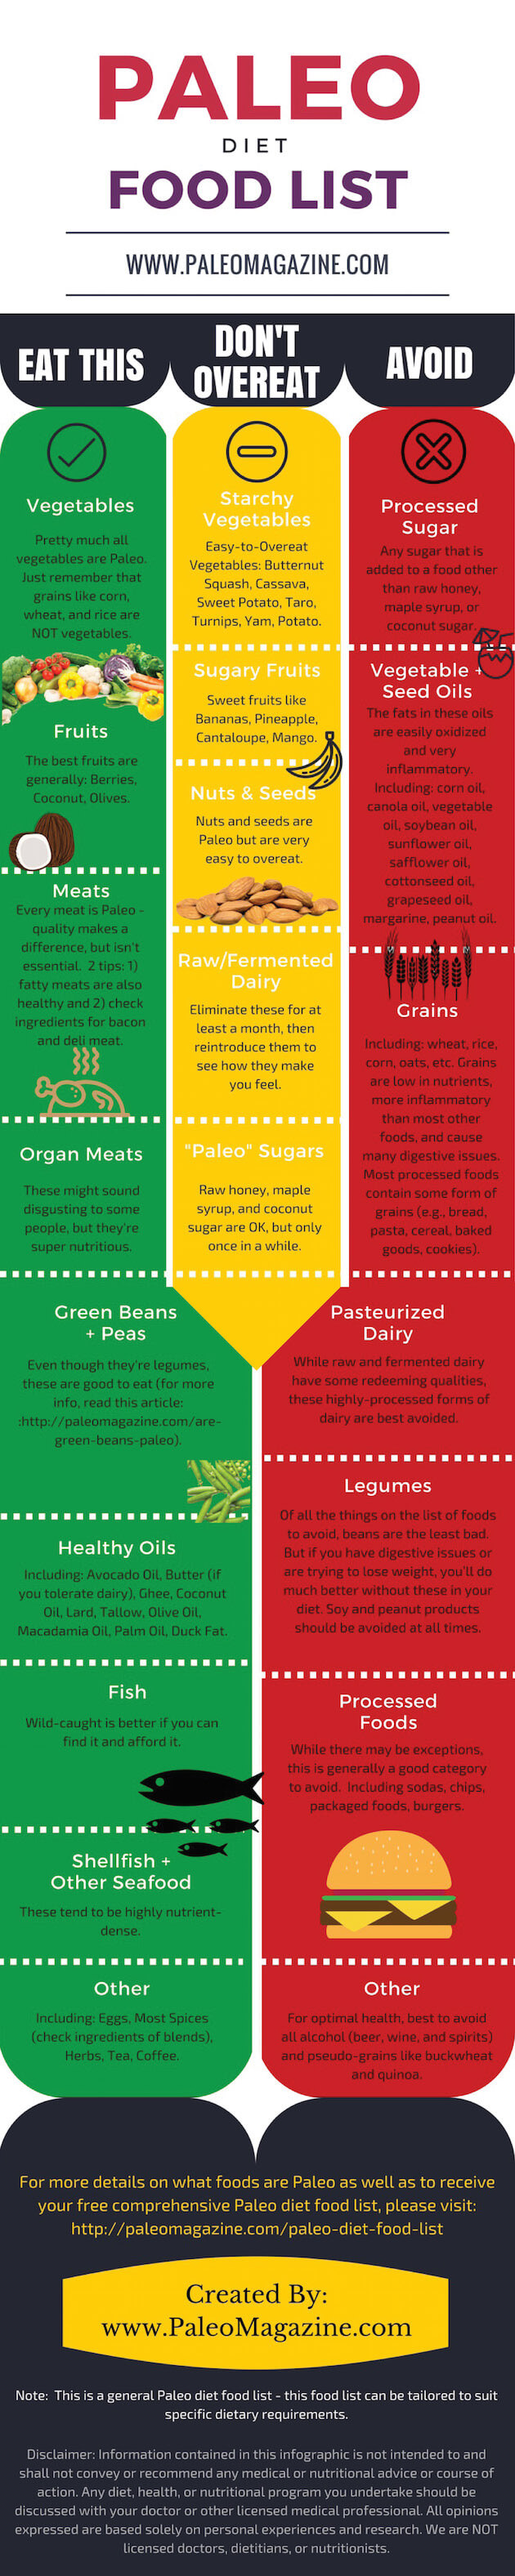 what are the basics of paleo diet??